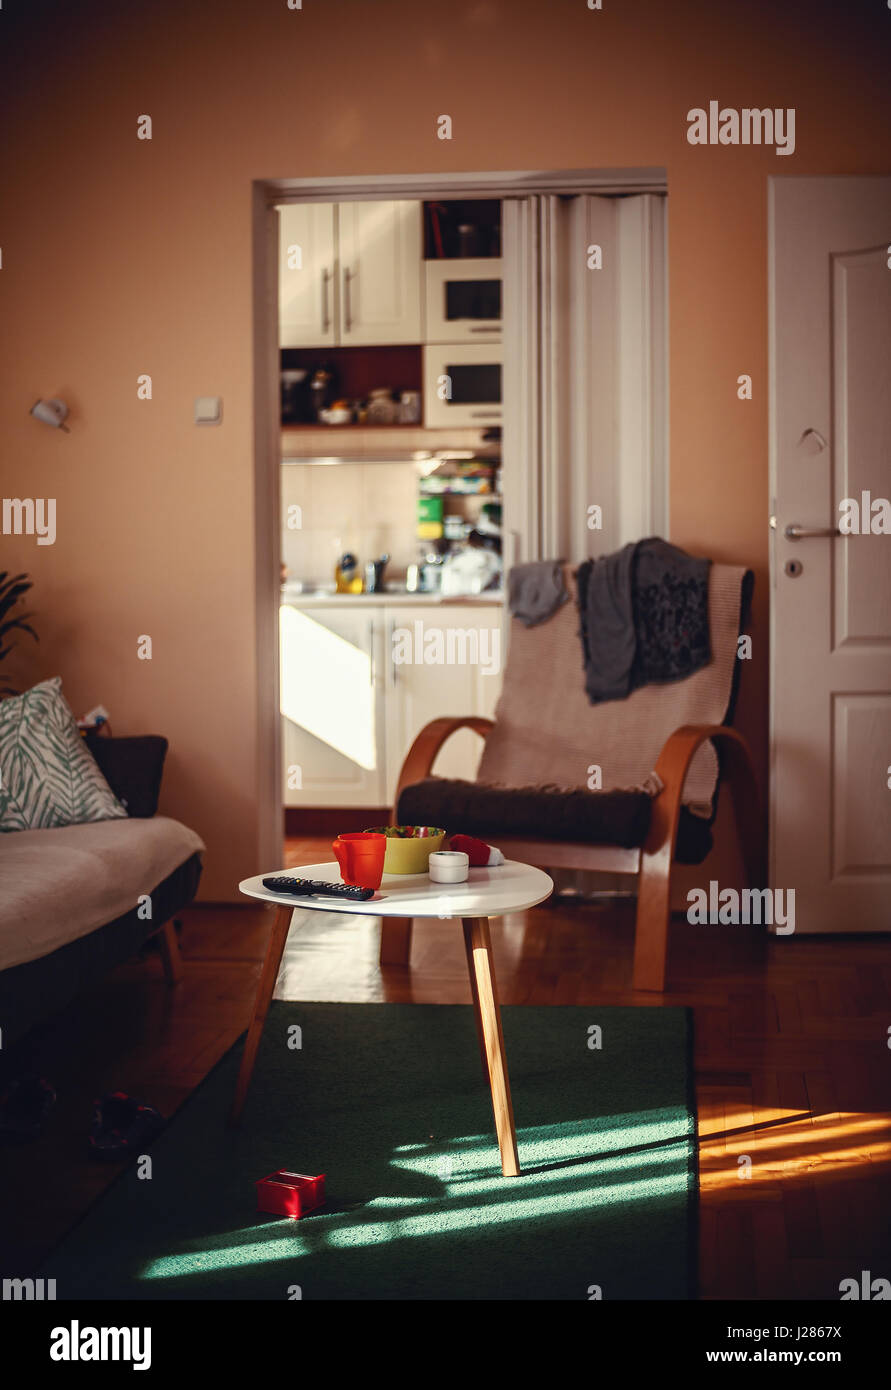 One ordinary home room, interior details during sunny day. - Stock Image